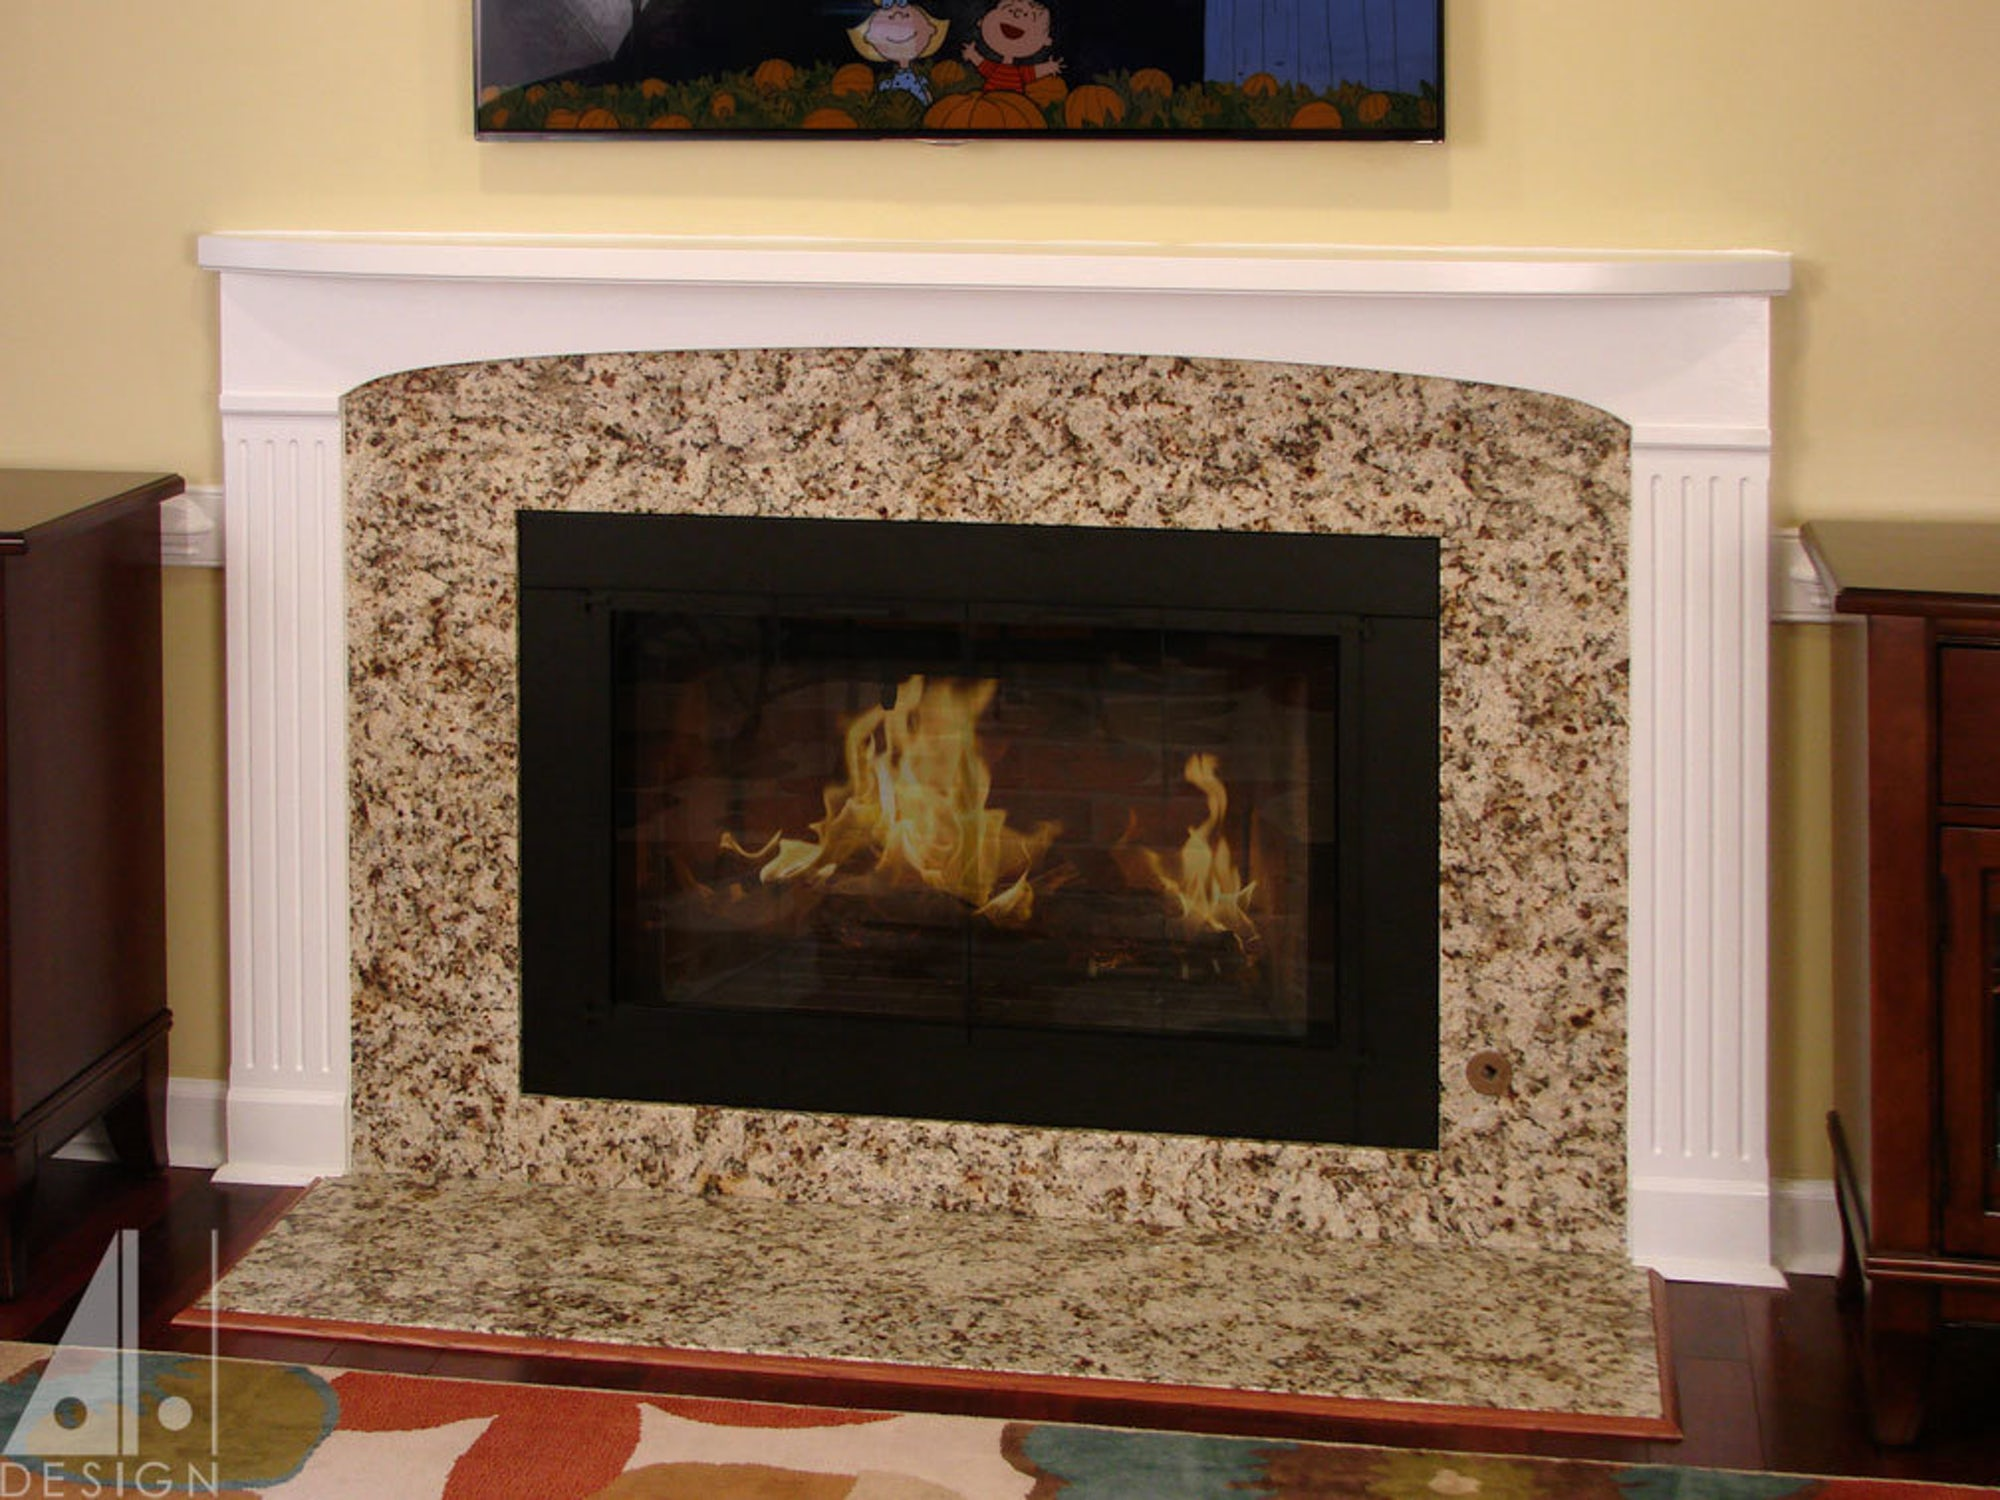 15-fireplace-in-place